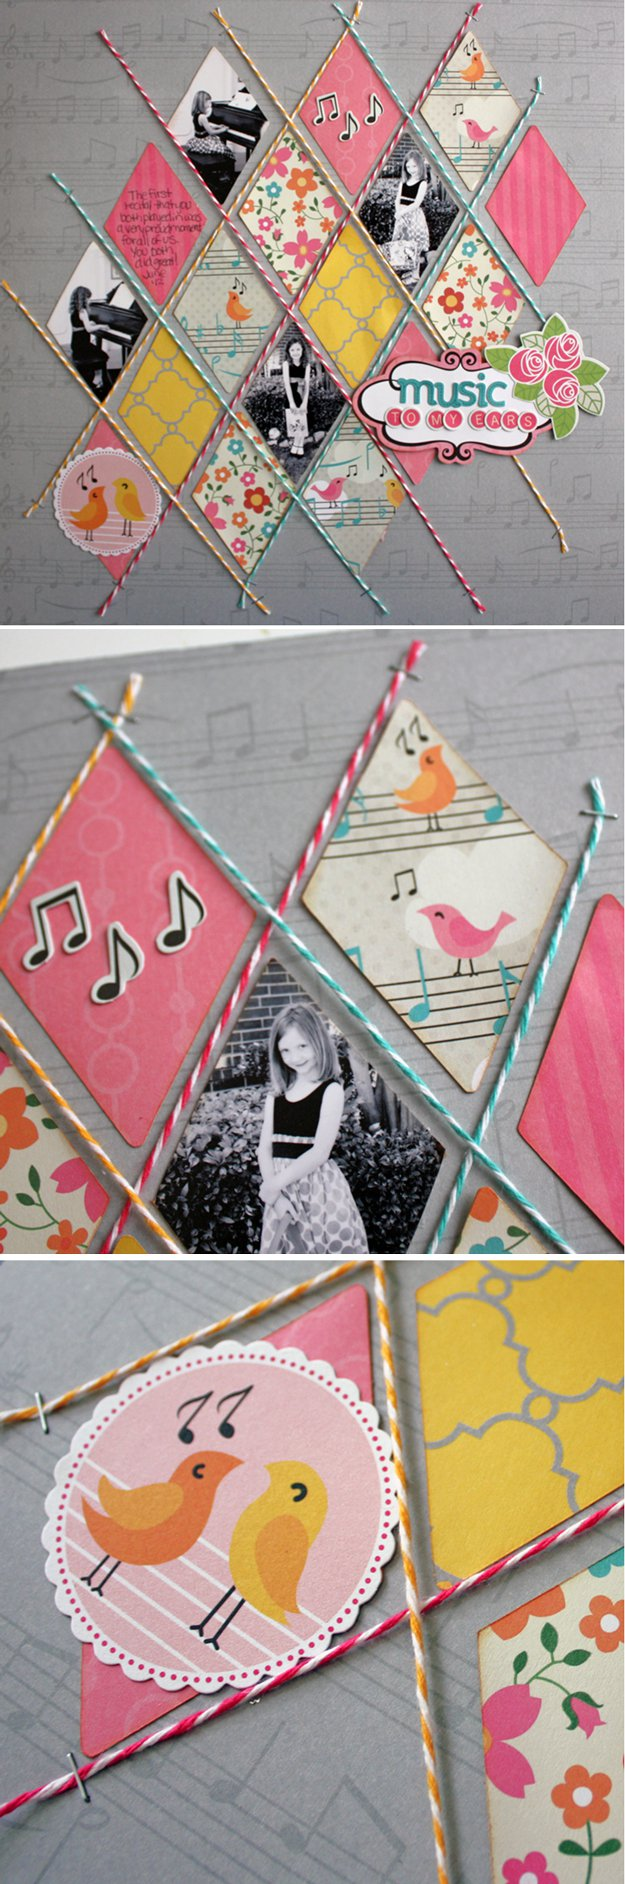 Scrapbook ideas about yourself - Try Scrapbook Ideas Diy Projects Do It Yourself Projects And Crafts